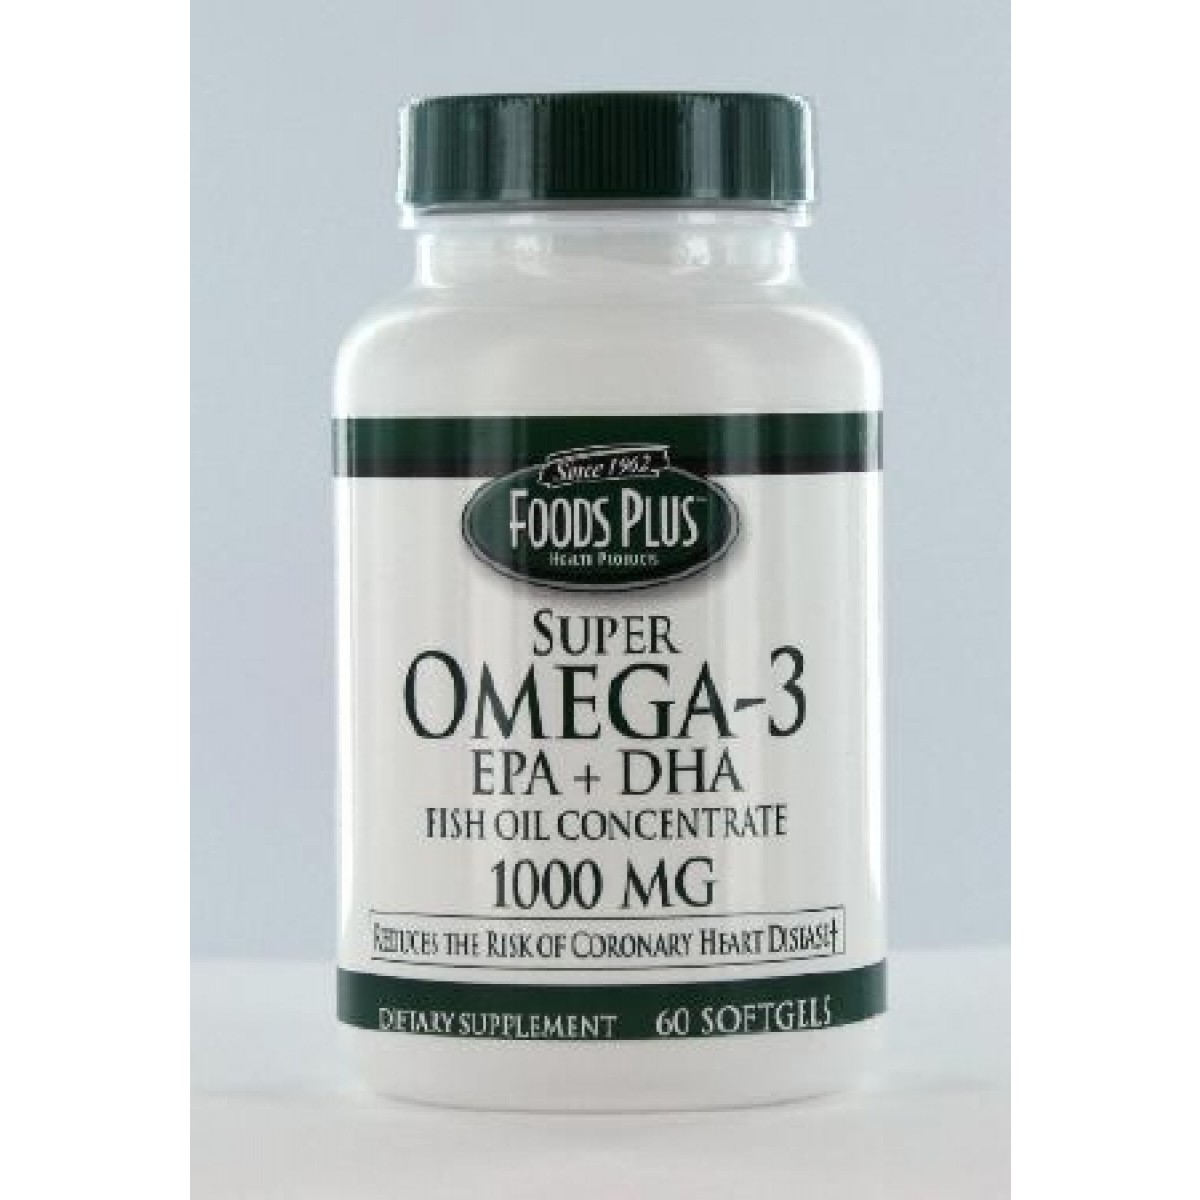 Foods plus omega 3 fish oil supplement fp675 for Omega 3 fish oil reviews